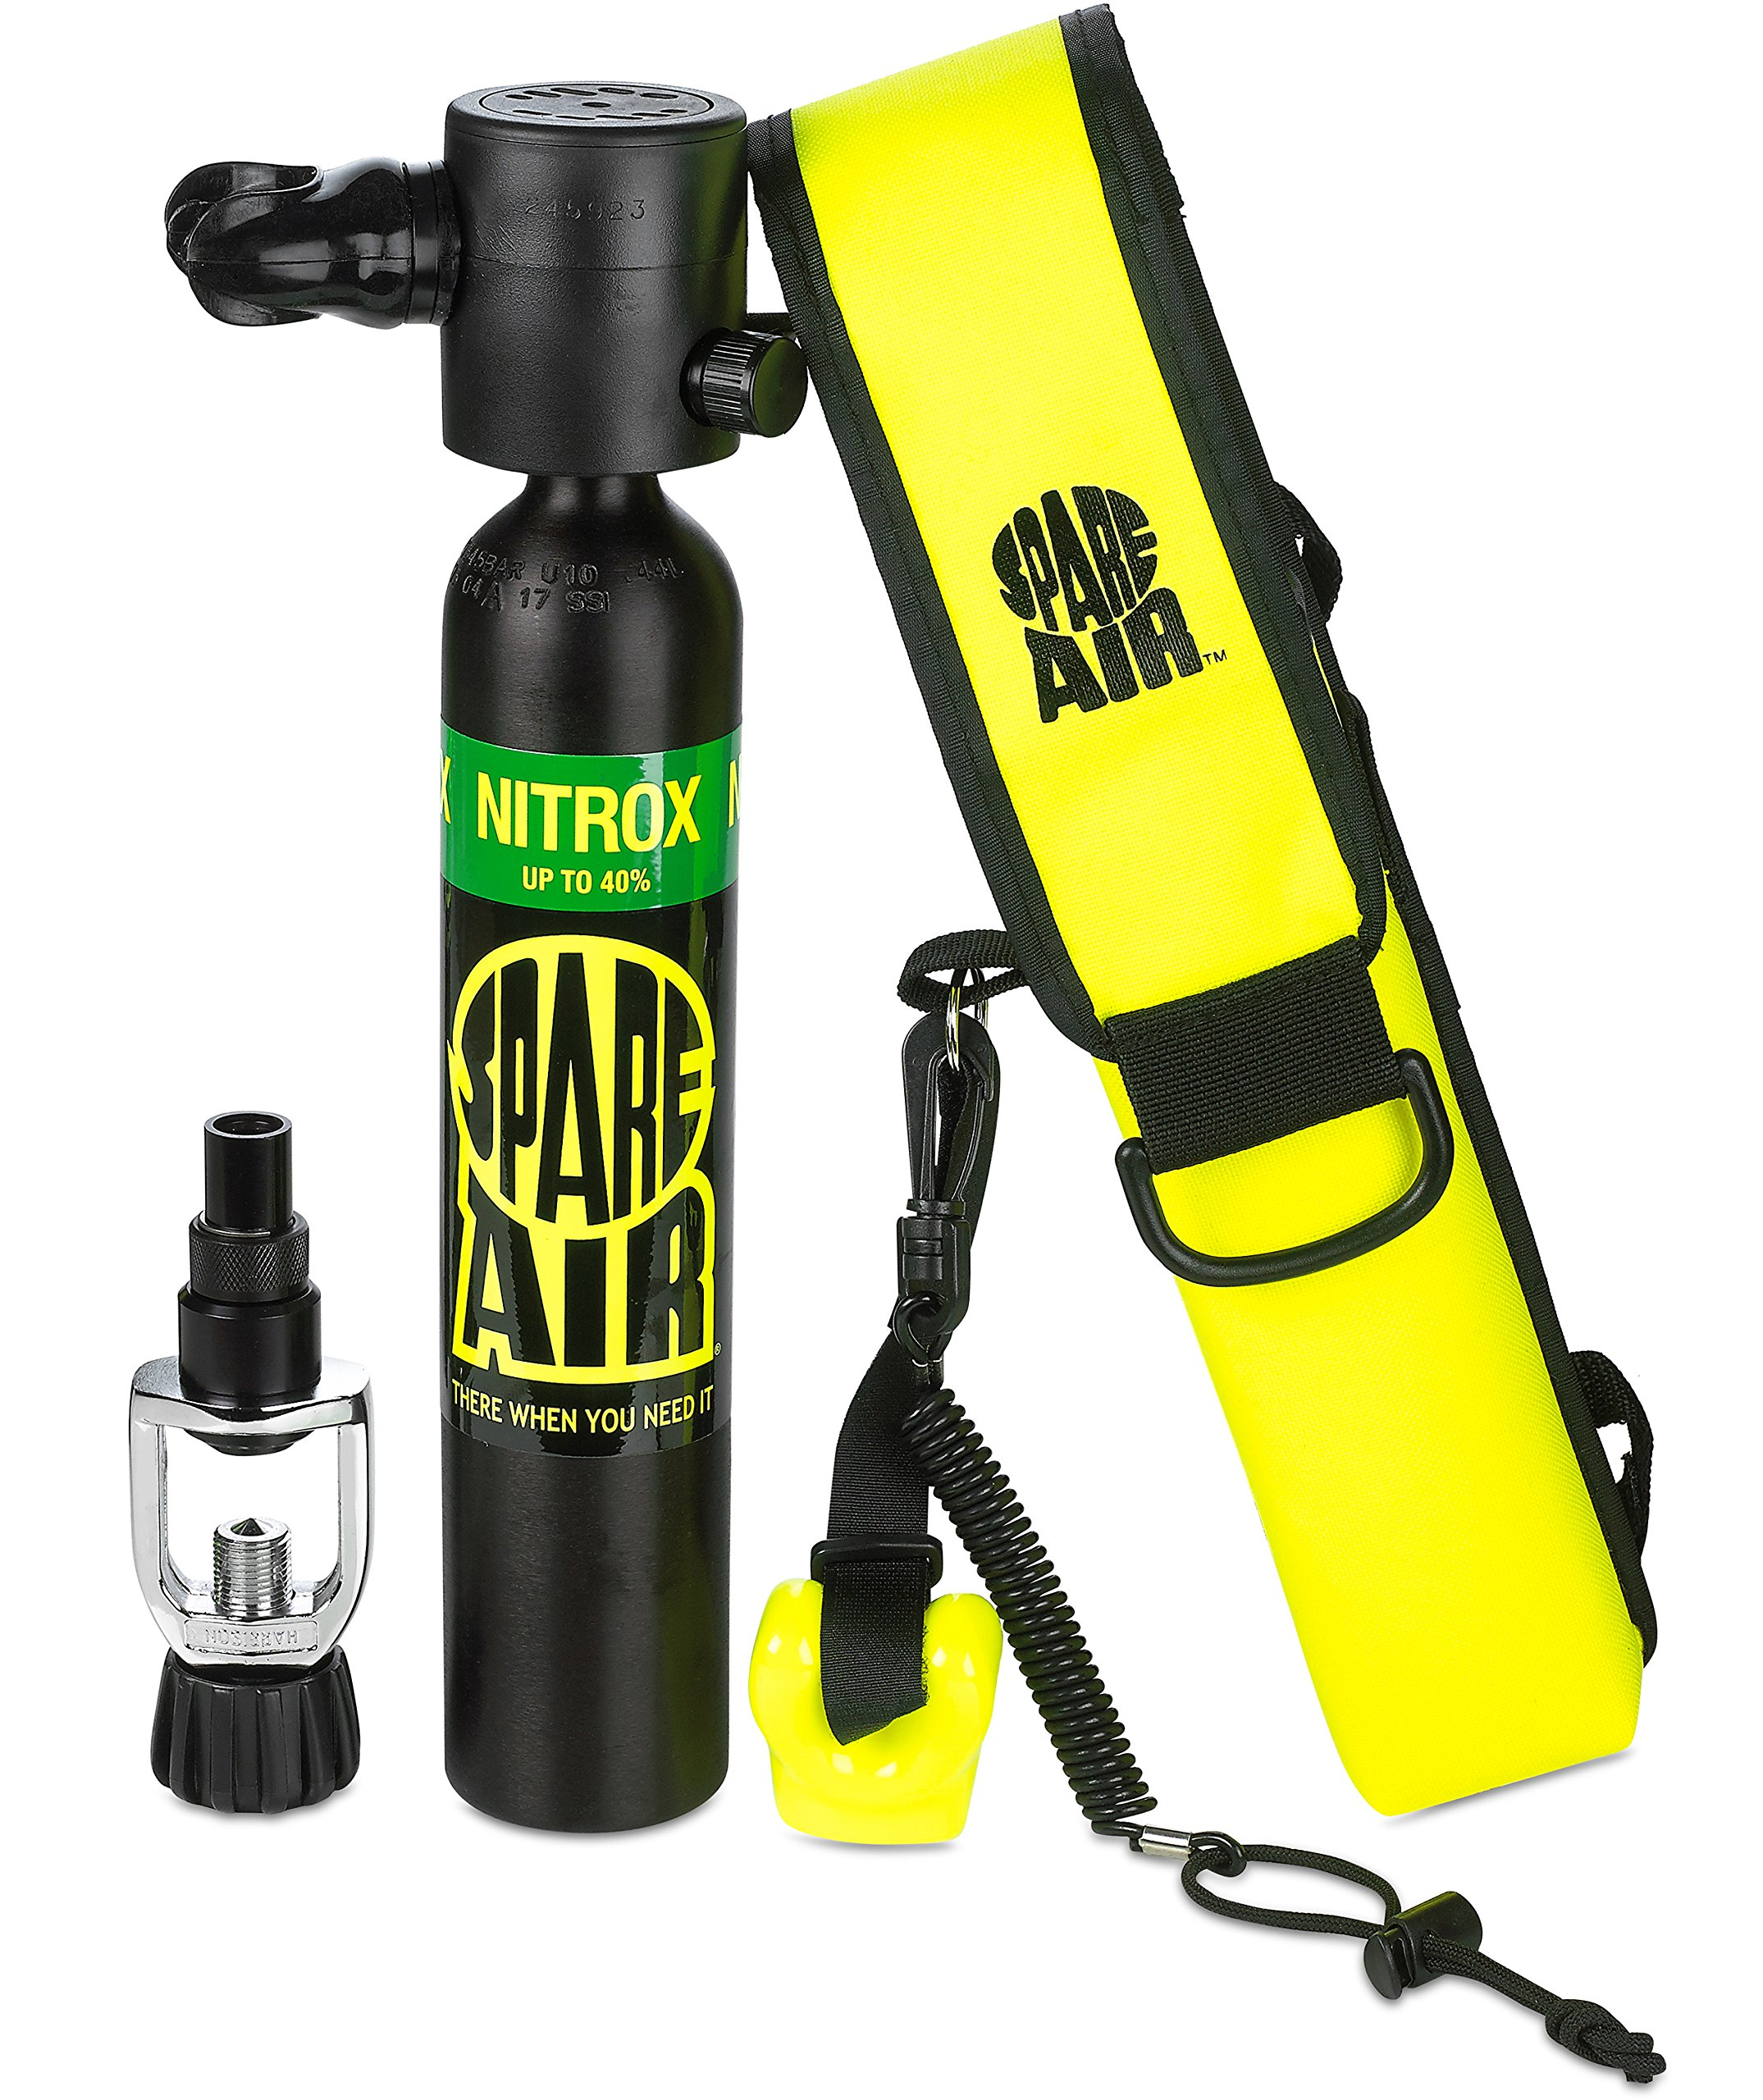 Spare Air Submersible Emergency Air Supply Package Set Scuba Diving Tank(Black, 3.0 Kit Nitrox) by Spare Air